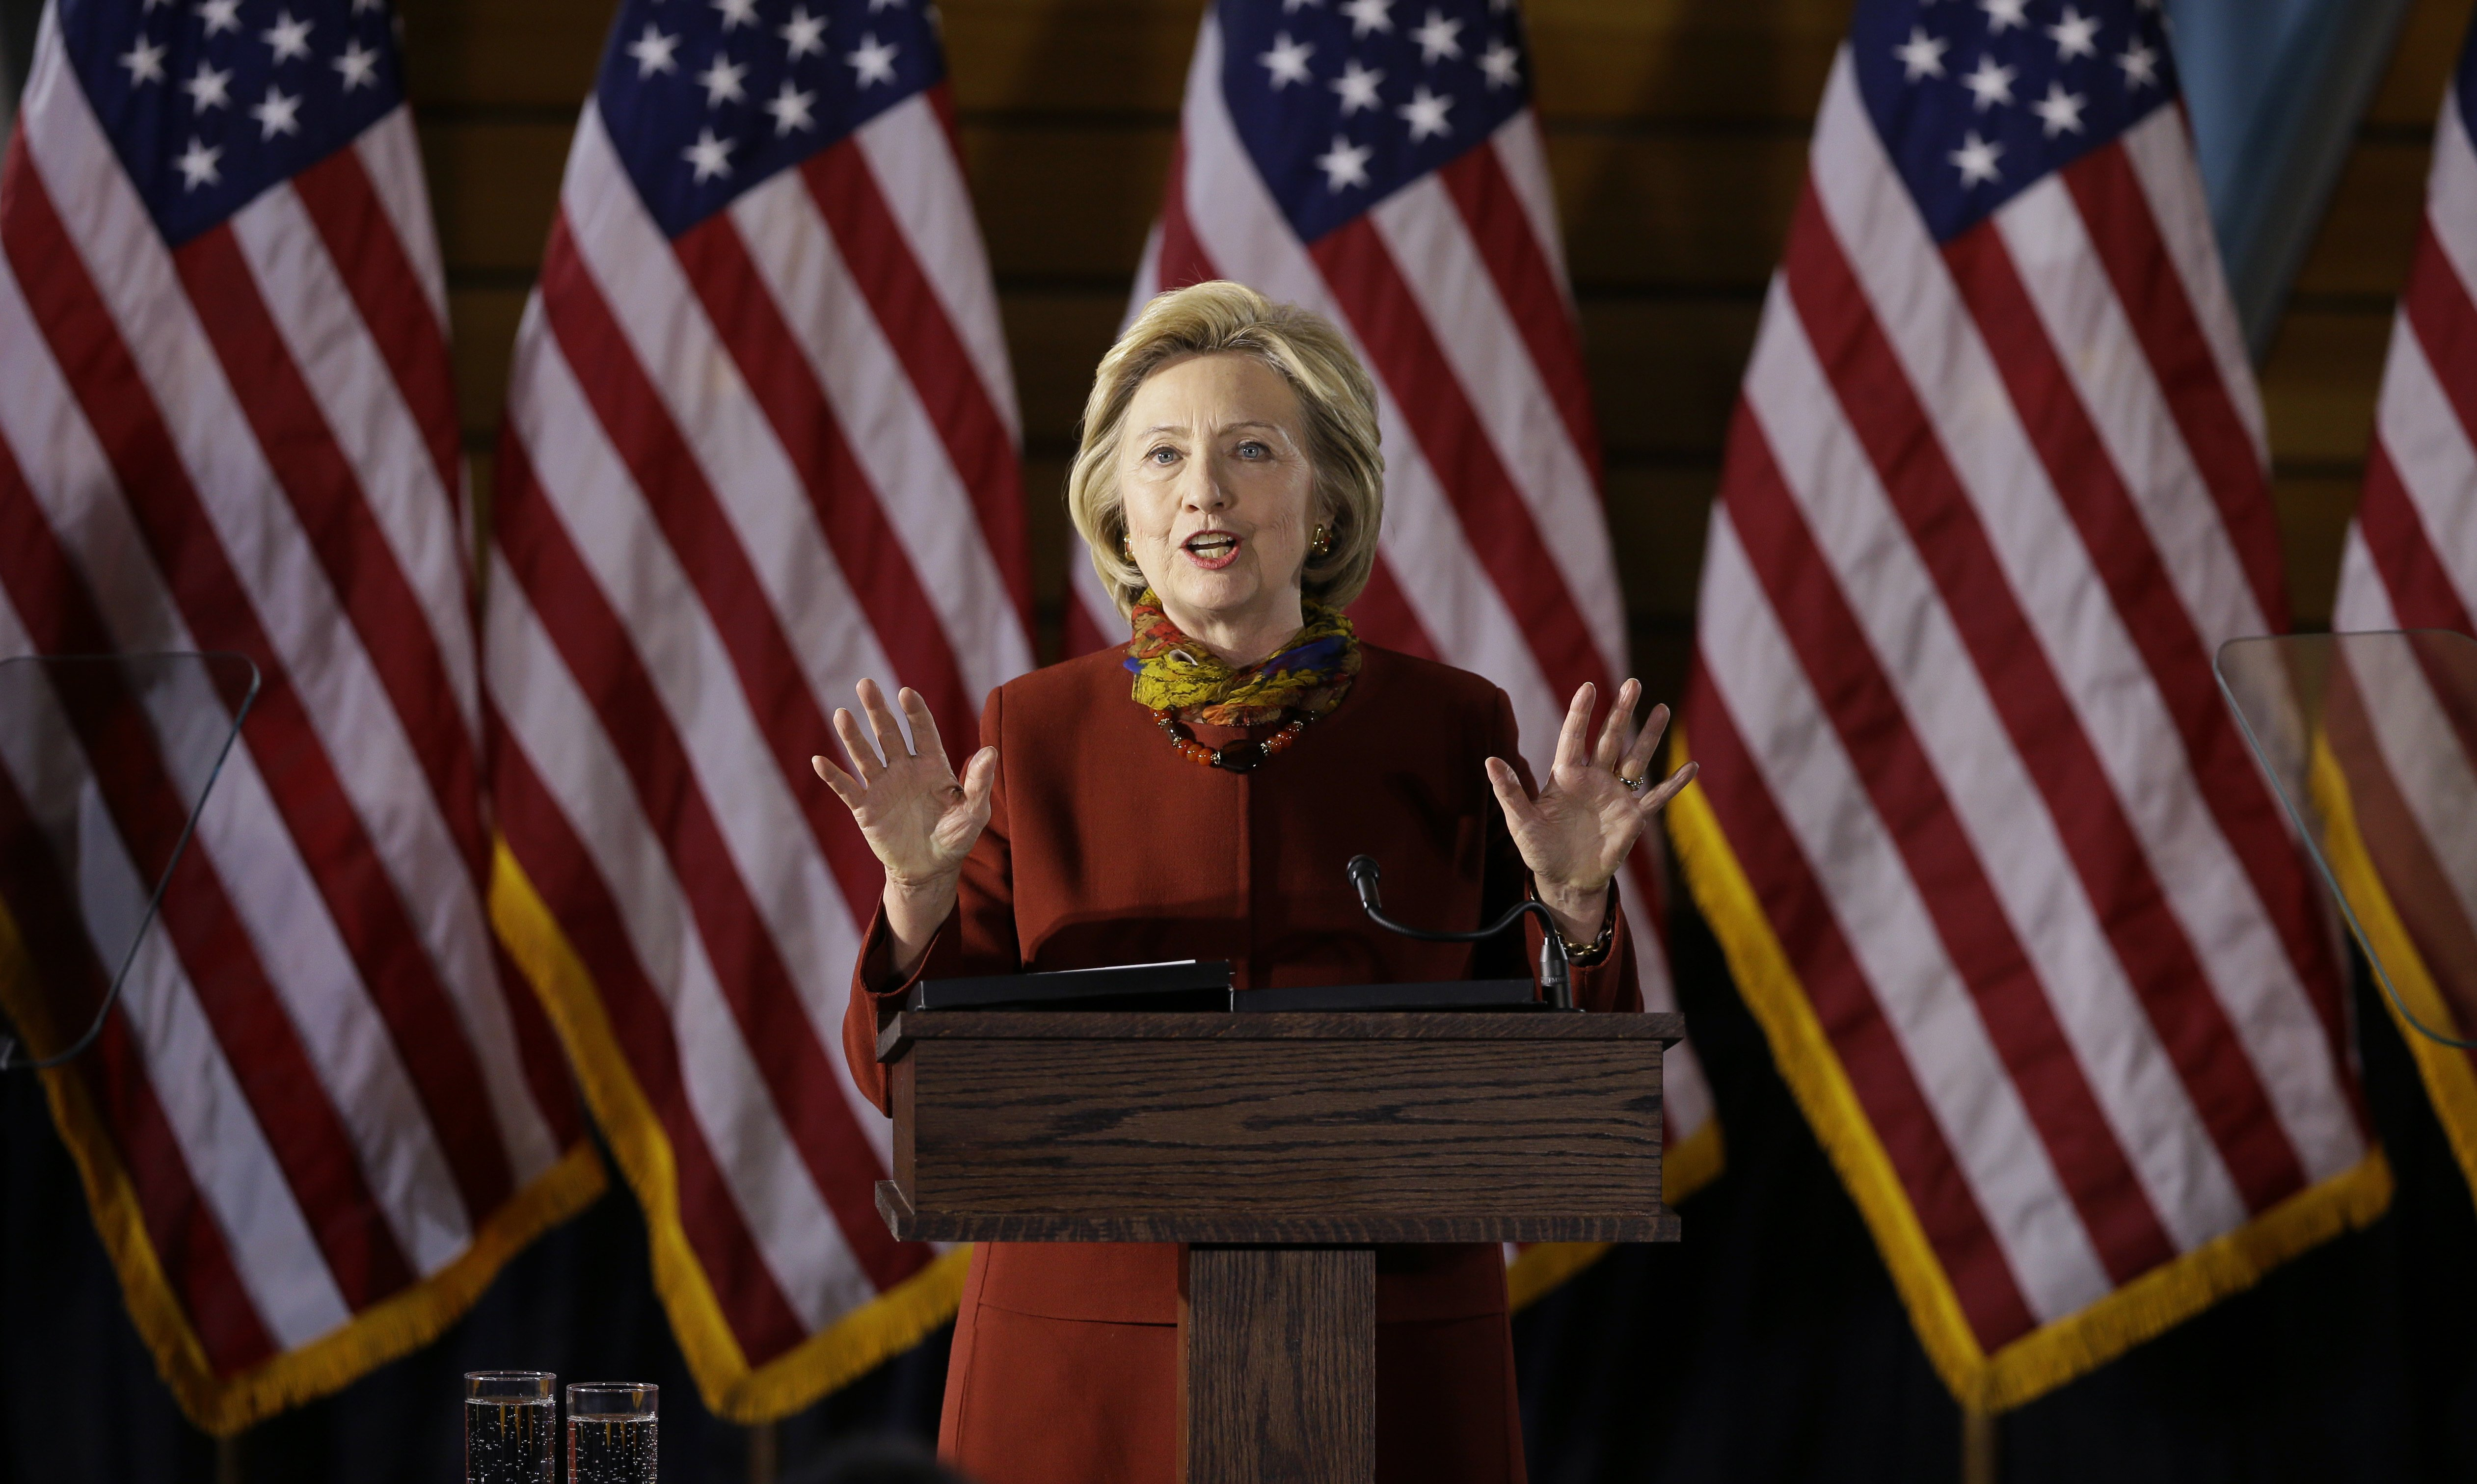 Hillary Clinton speaks about her counterterrorism strategy at the University of Minnesota in Minneapolis on Dec. 15, 2015.